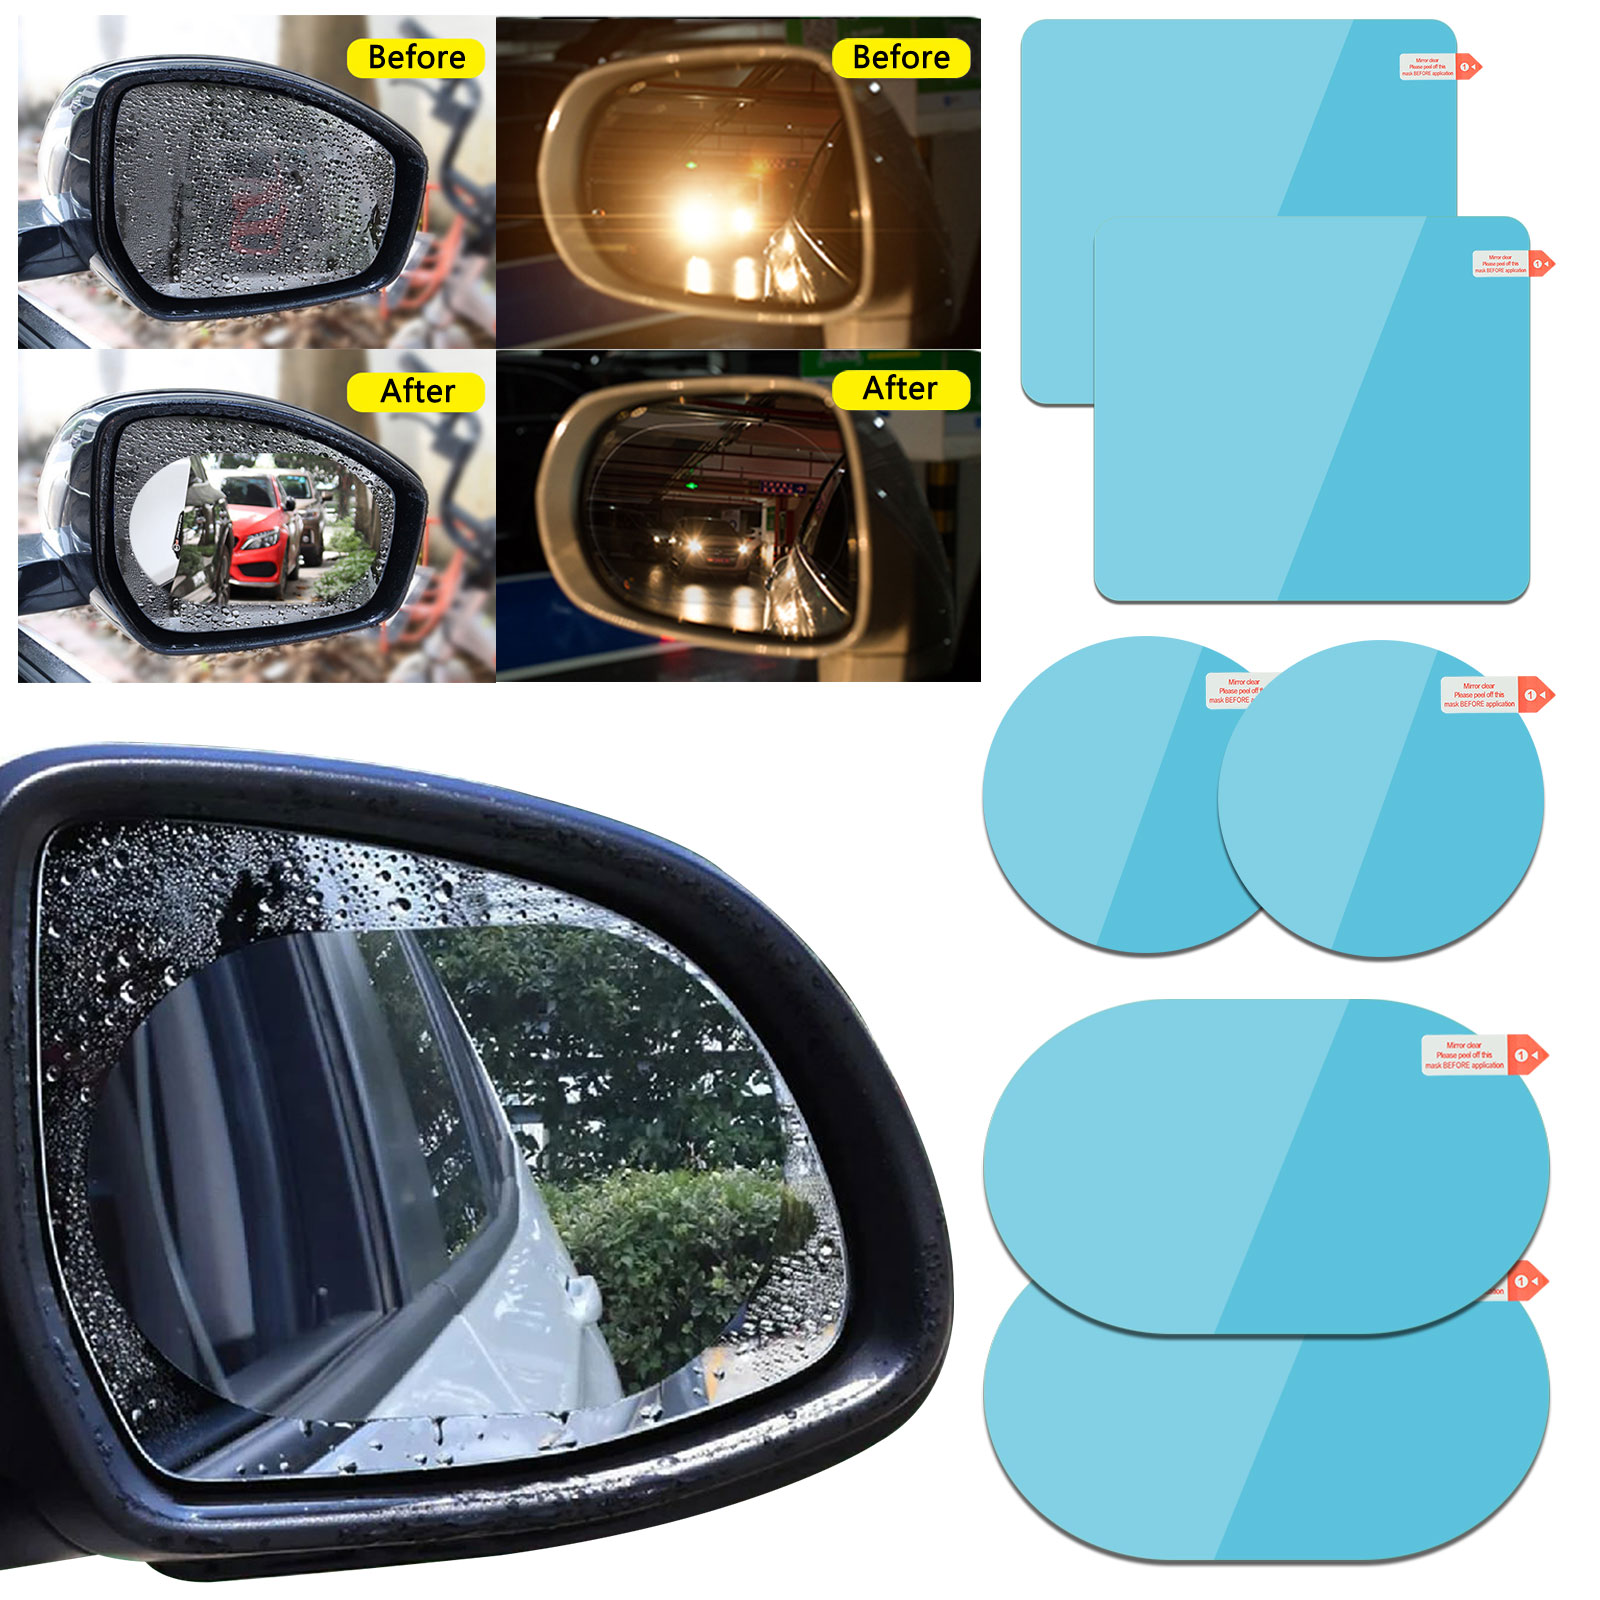 Car Rearview Mirror Anti-Fog Film Film Car Side Window Reflective Mirror Universal Waterproof Film Suitable for All Automobile Vehicle Models